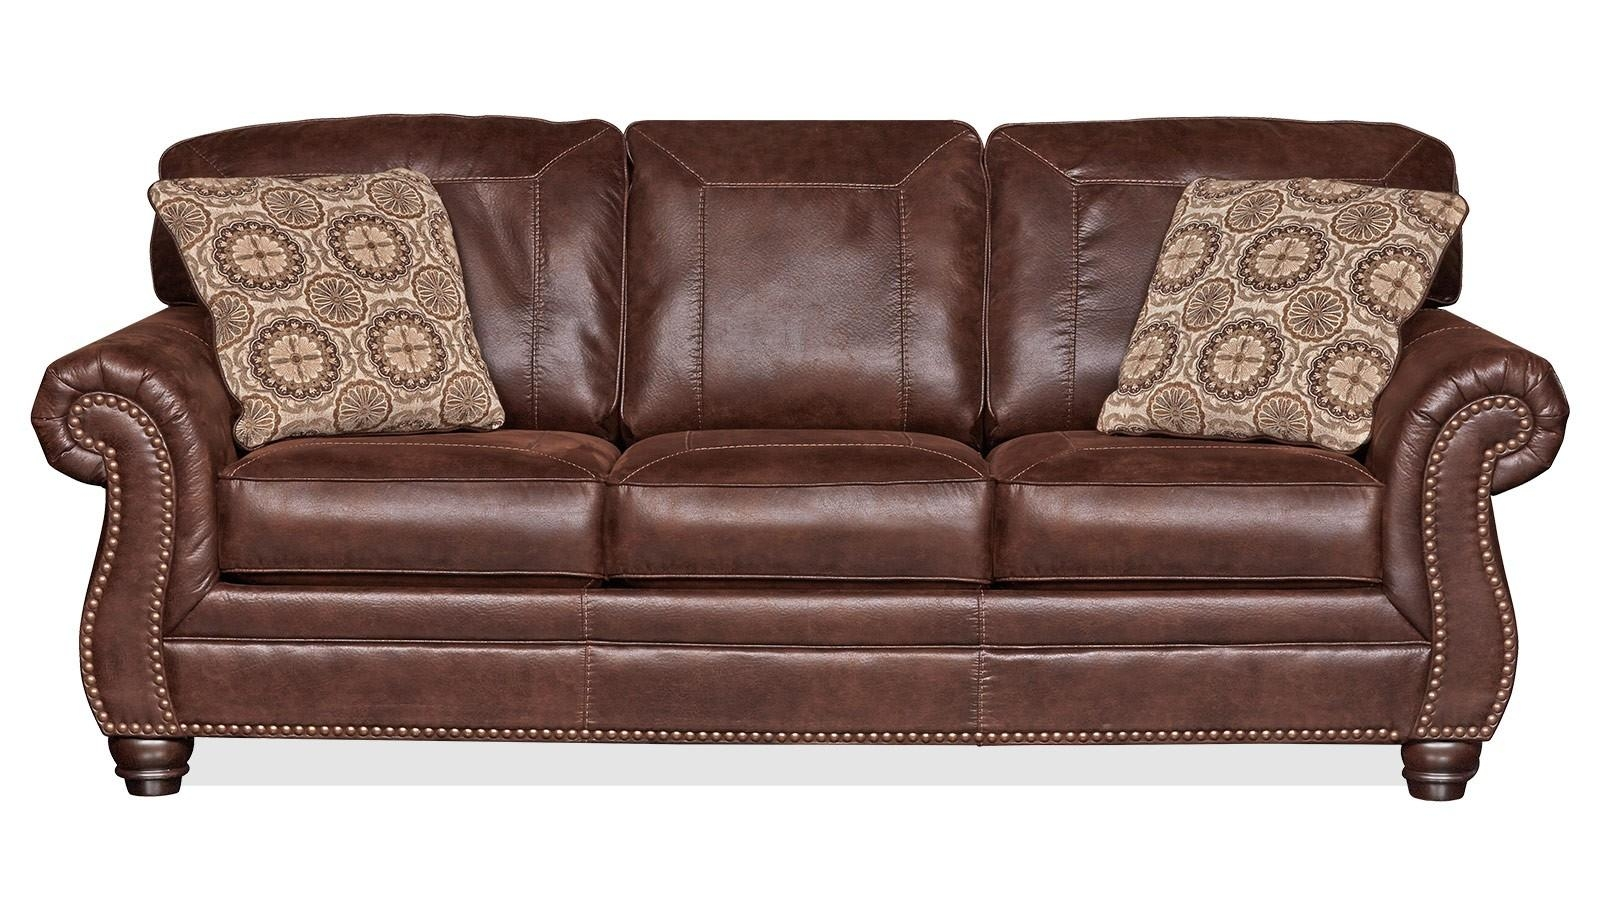 Living Room Sofas   Gallery Furniture Pertaining To Brown Sofa Chairs (Image 14 of 20)